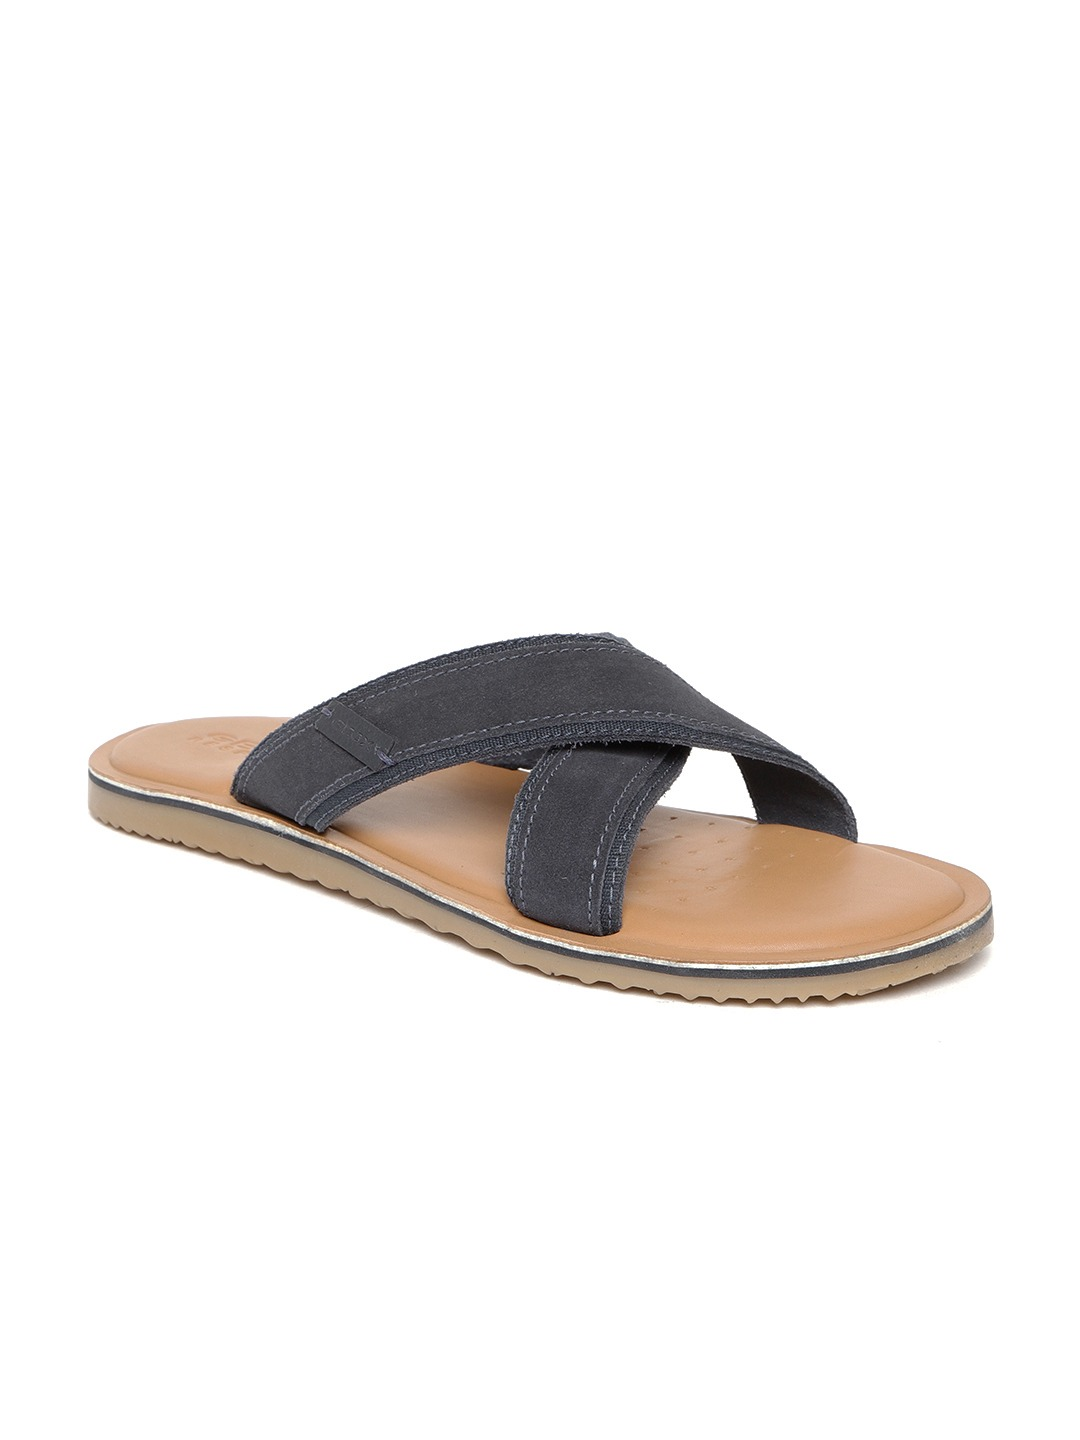 Navy Blue Suede Comfort Sandals